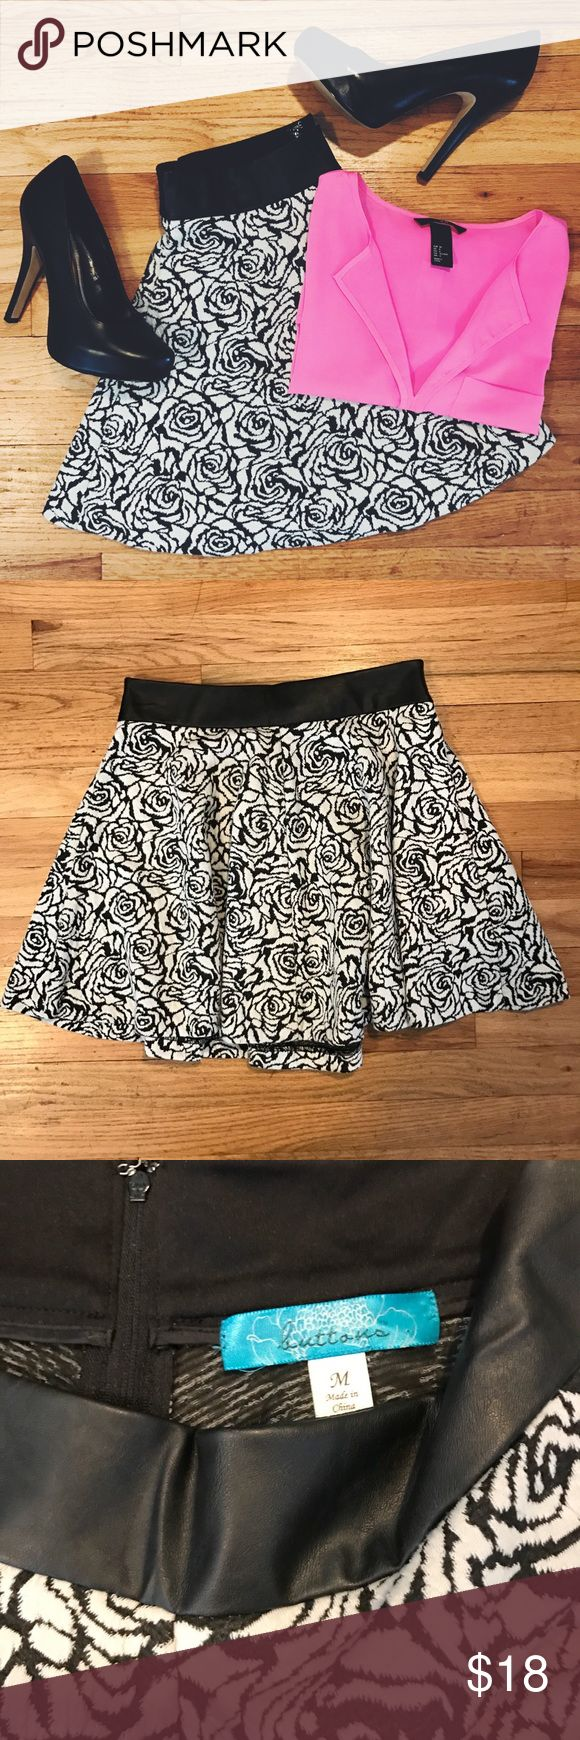 francesca's Black/White Skater Skirt Size Med francesca's Black/White Skater Skirt Size Med. Textured Floral Print with Faux Leather Waistband. Zip Closure. Like New! Francesca's Collections Skirts Circle & Skater